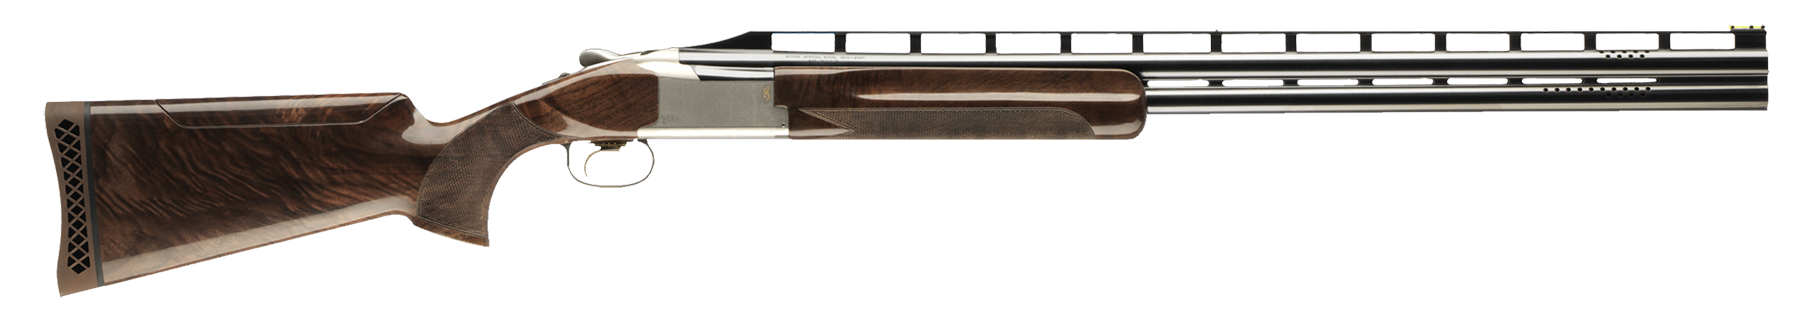 Browning Citori 725 Trap Over/Under Shotgun 2.75'' 12 Gauge 32'' Silver Nitride Steel - Black Walnut